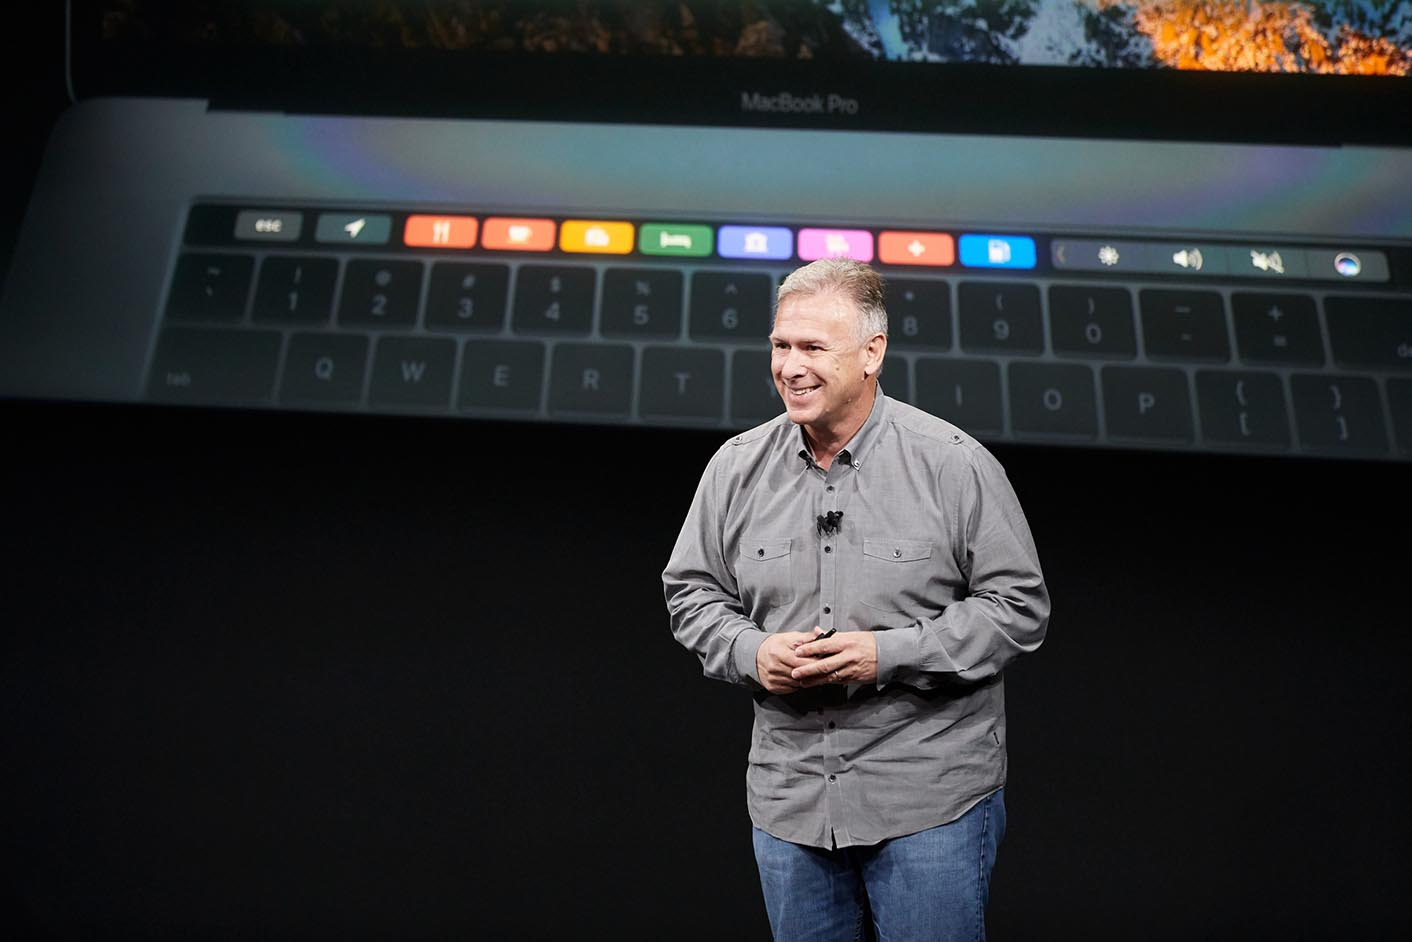 MacBook Pro 2016 Phil Schiller